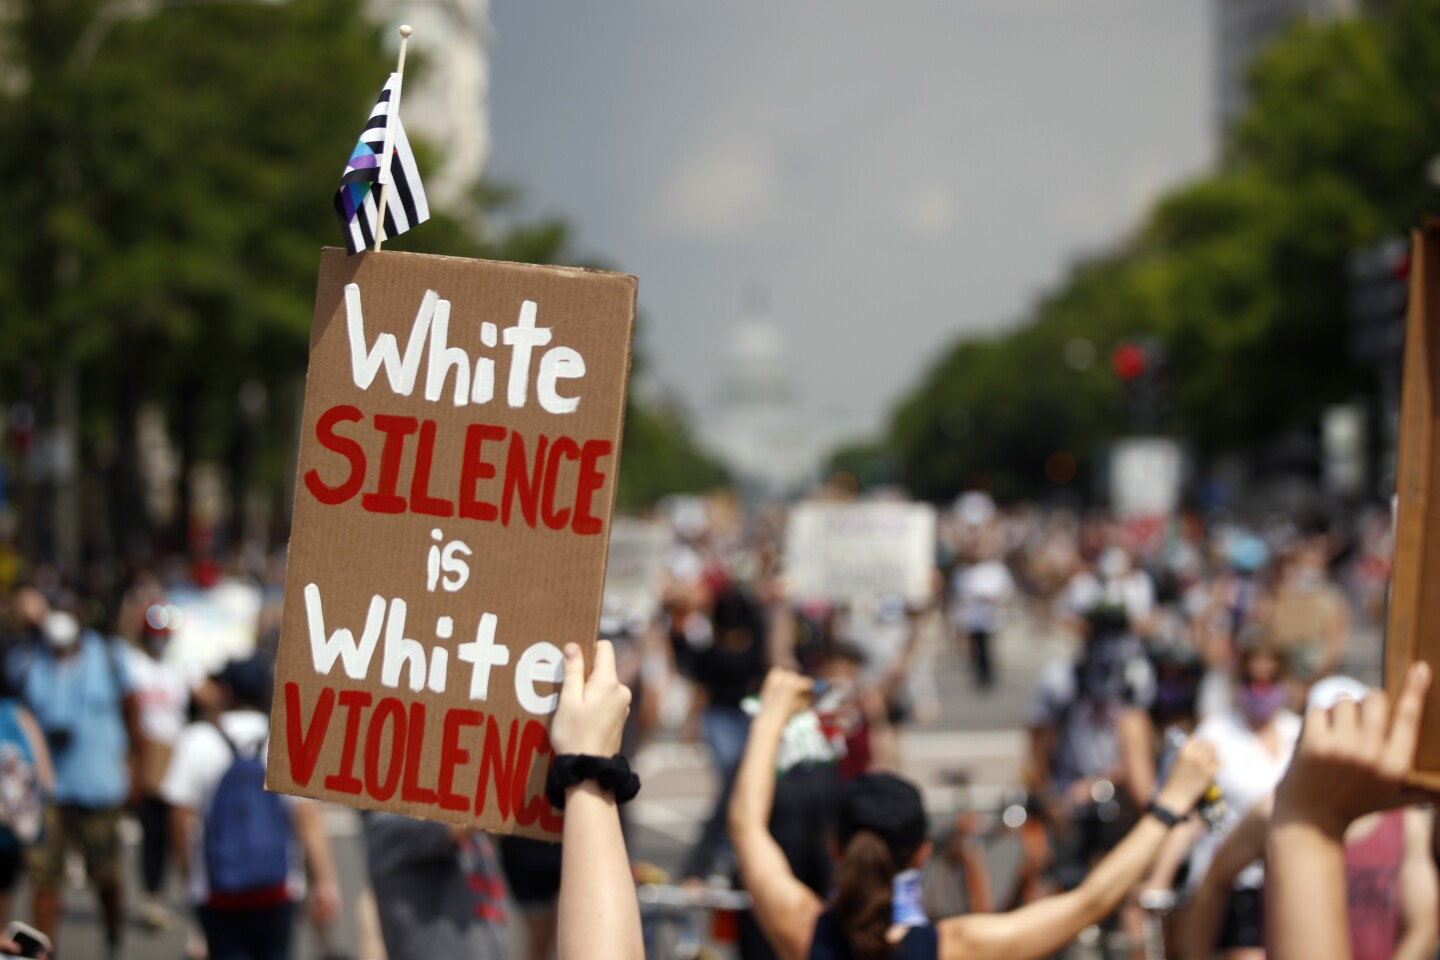 Demonstrators protest, Saturday, June 6, 2020, in Washington, over the death of George Floyd, a black man who was in police custody in Minneapolis. Floyd died after being restrained by Minneapolis police officers. (AP Photo/Andrew Harnik)